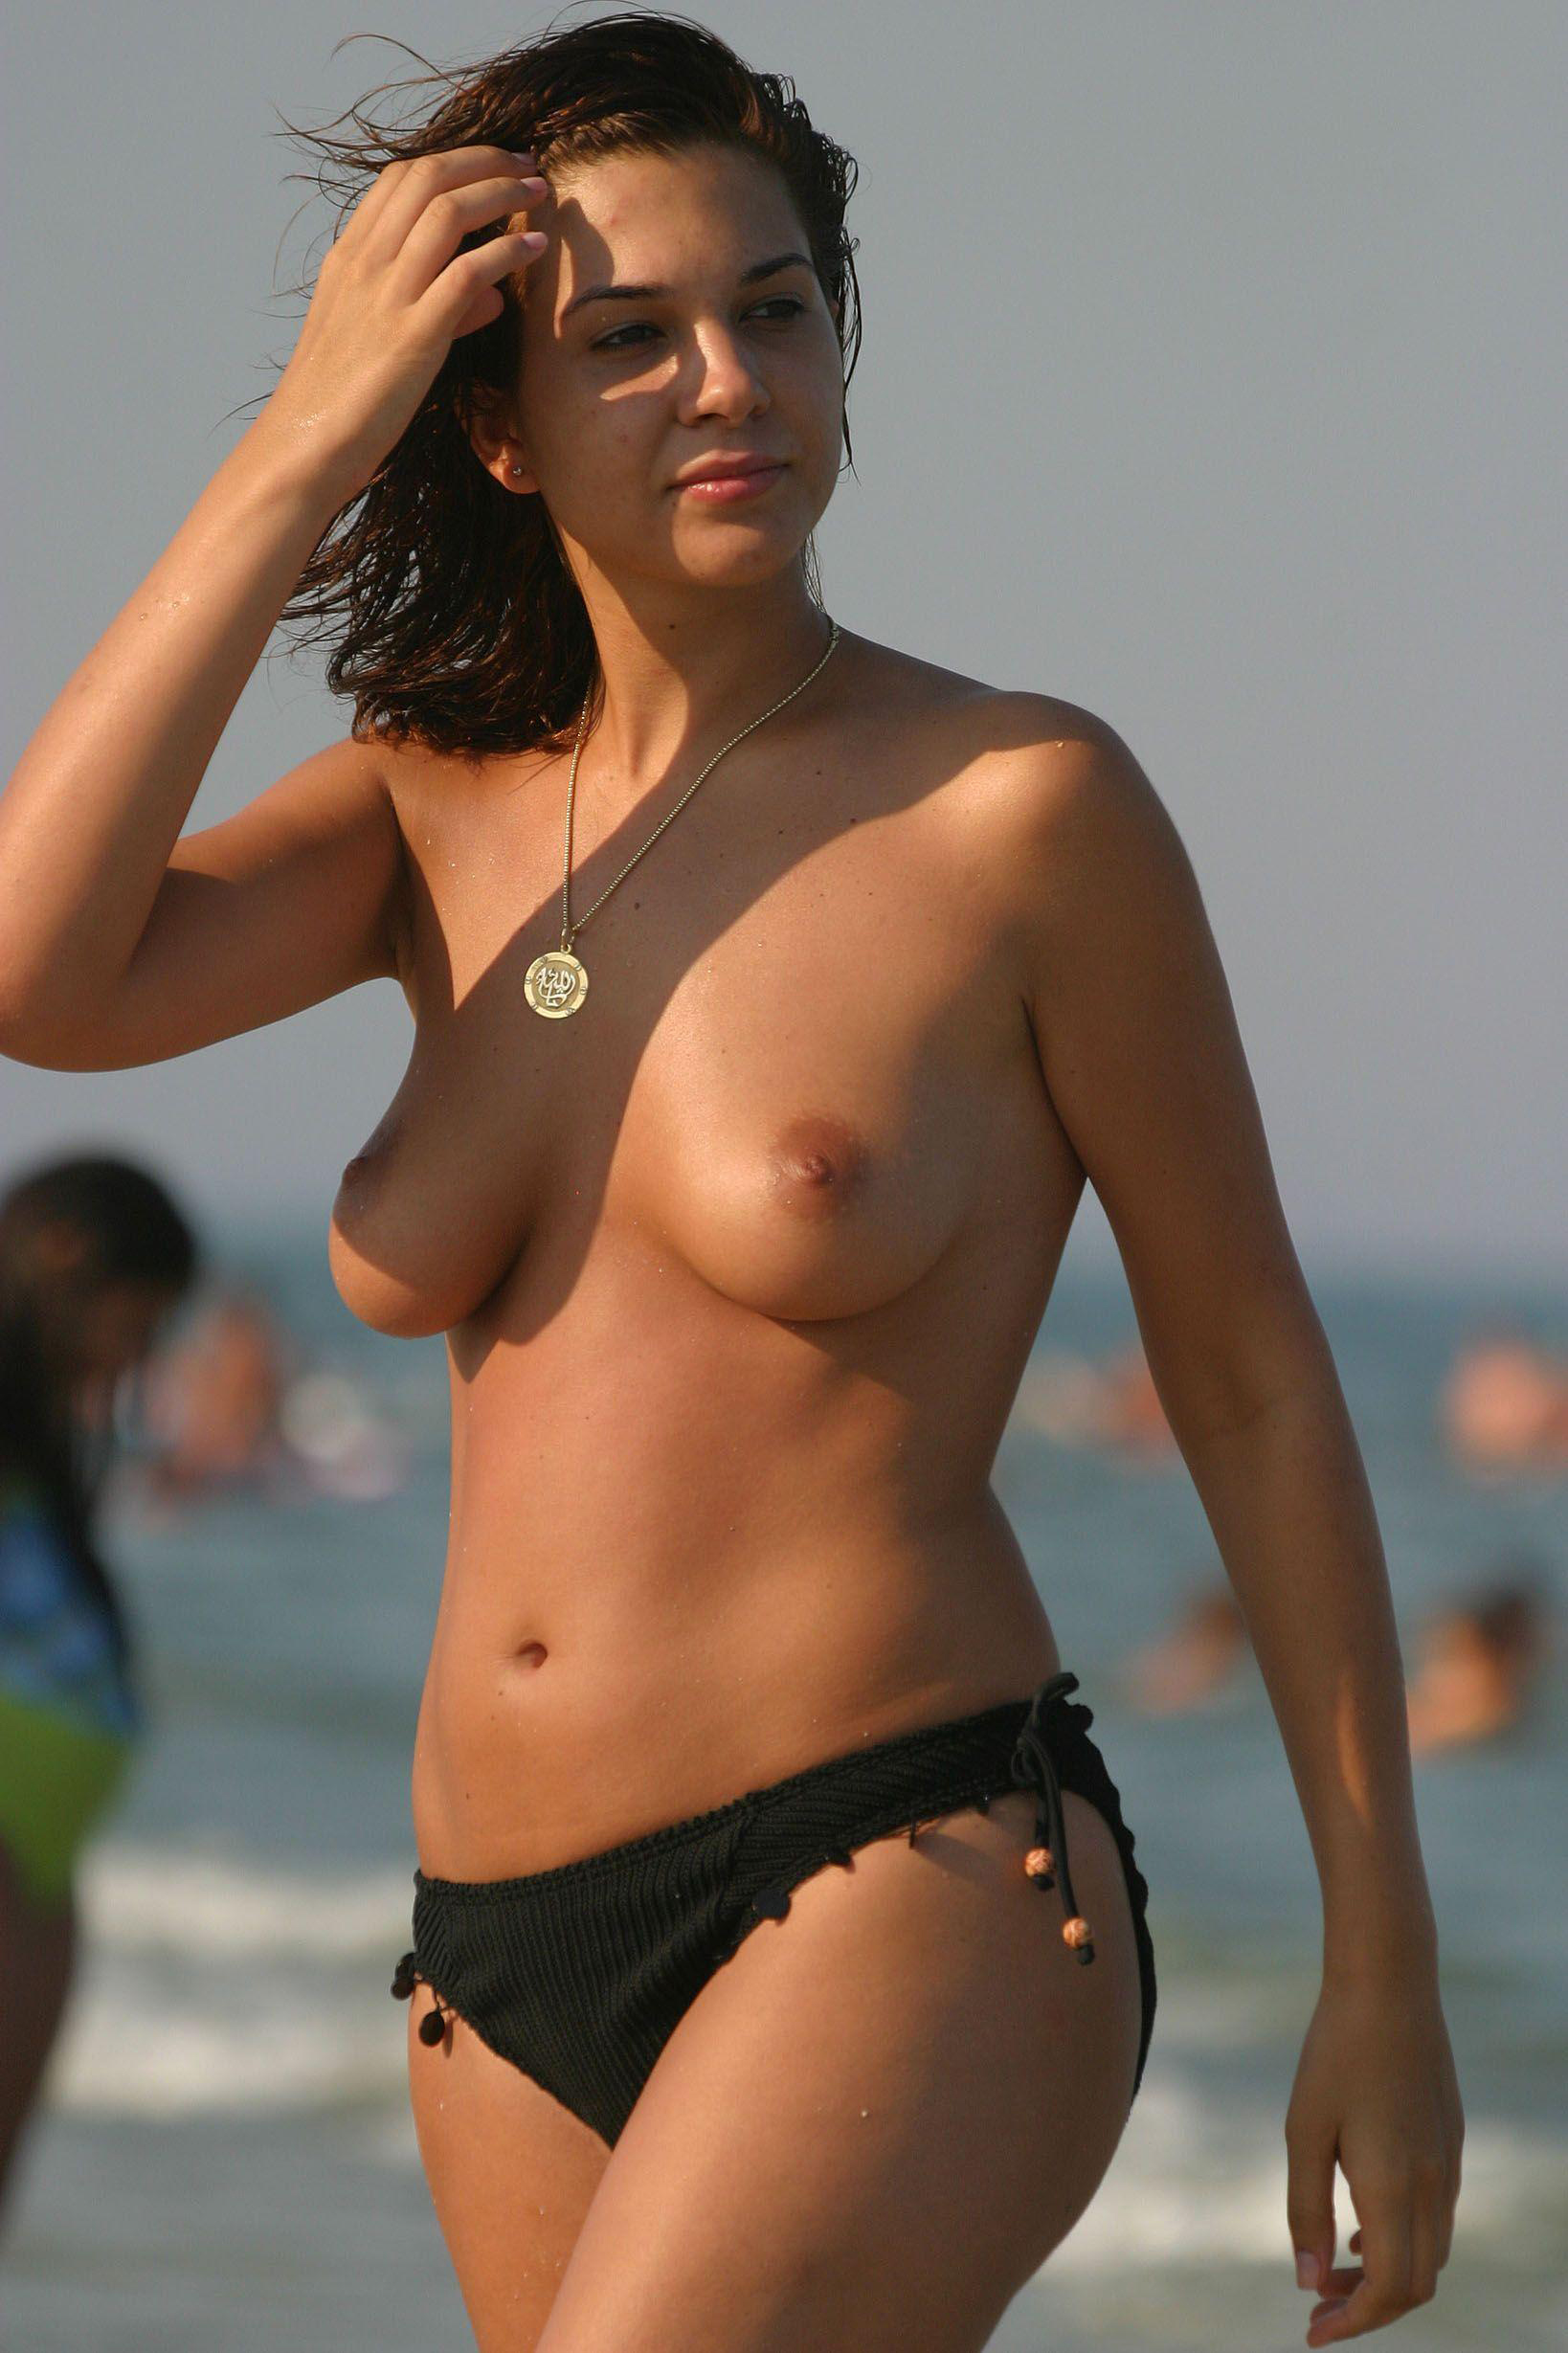 She expose her per tits for camera